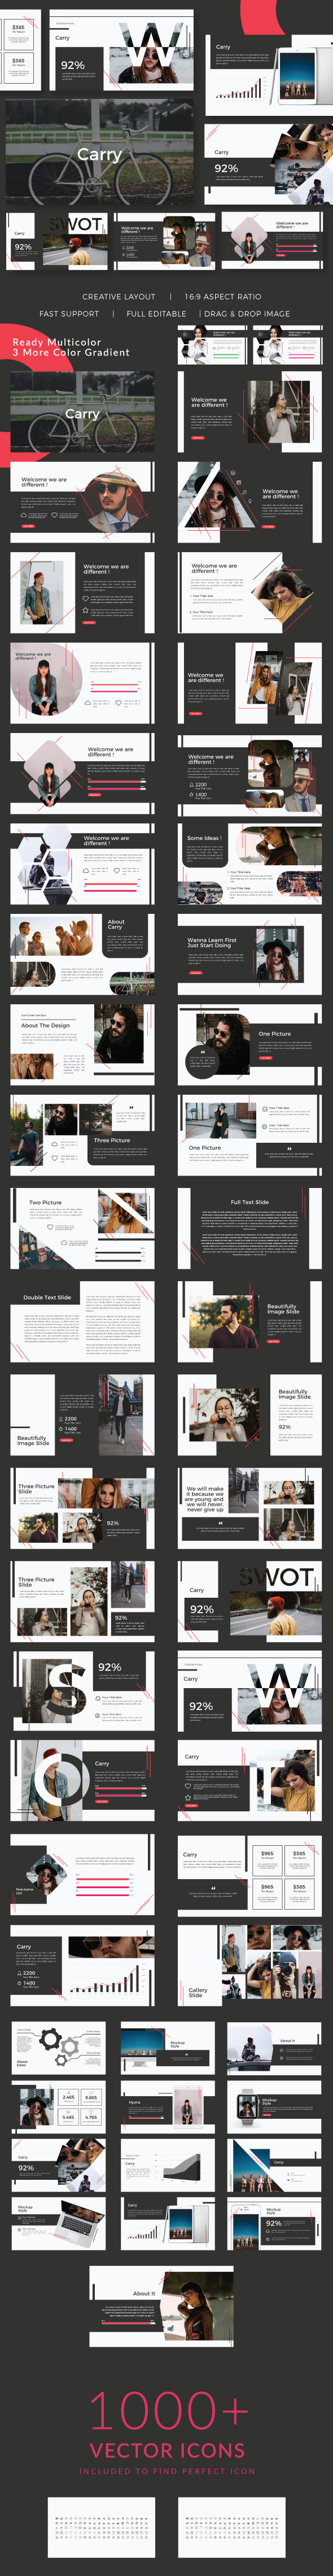 Carry Creative Presentation Business - Business PowerPoint Templates